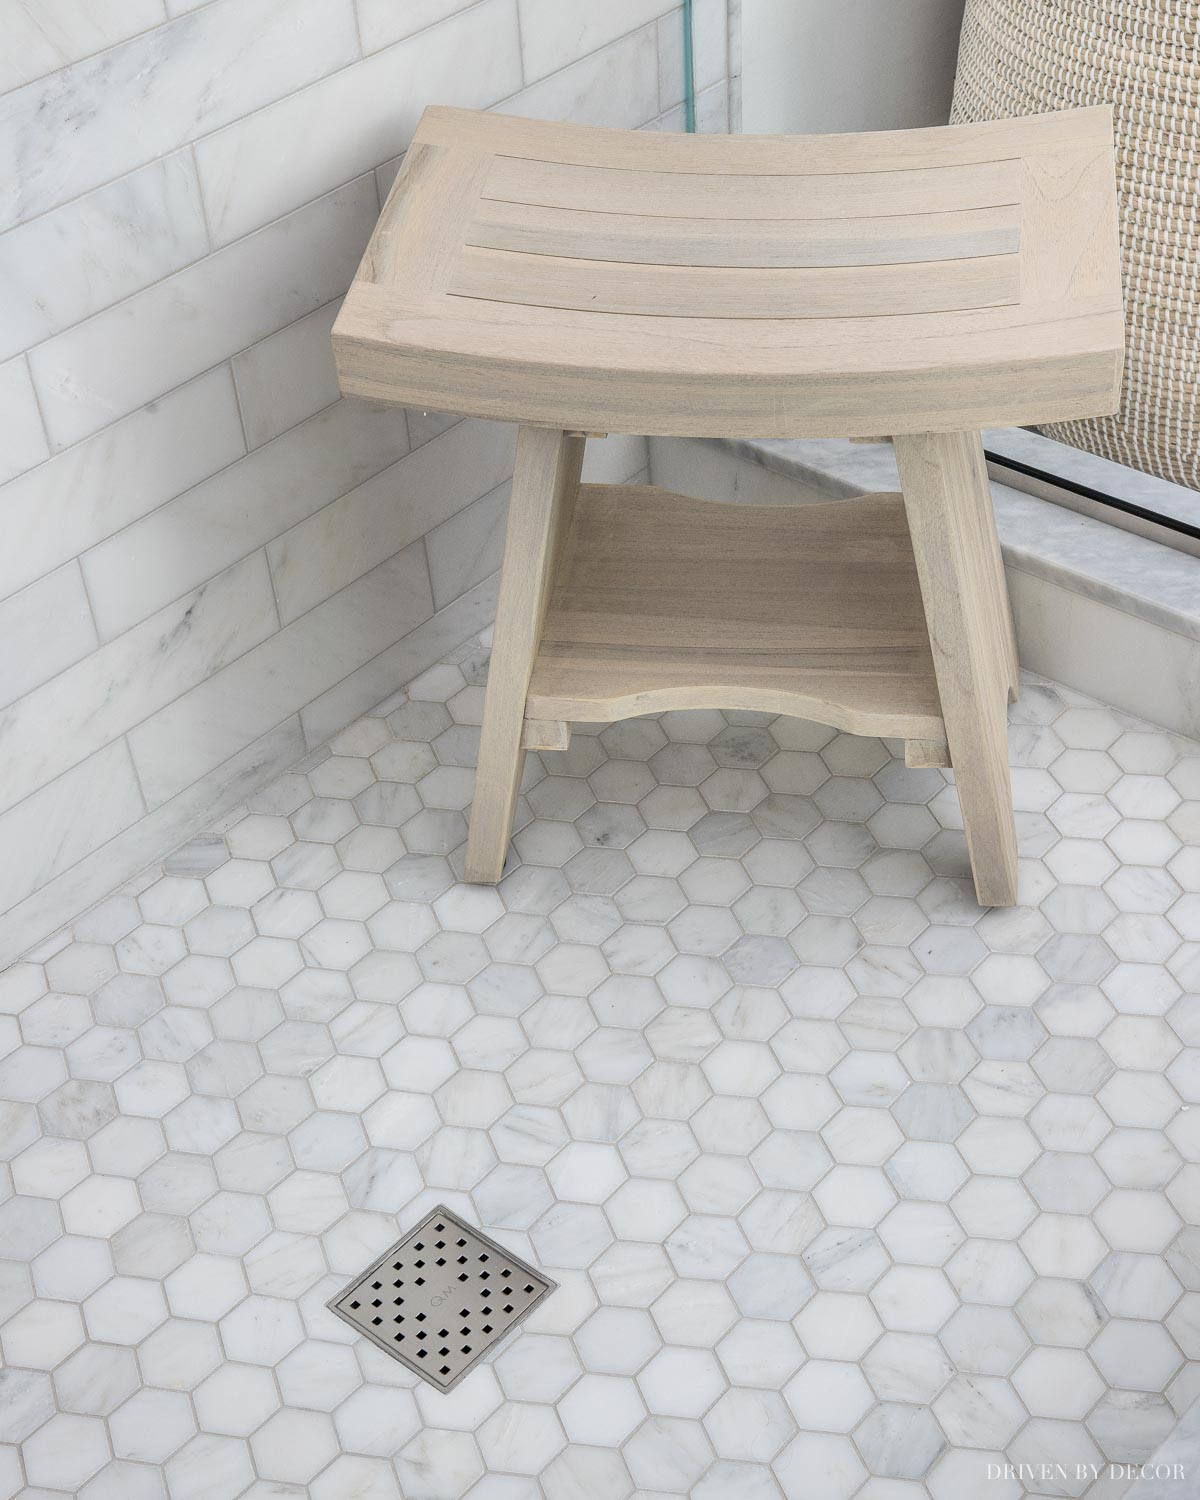 Love the idea of a freestanding shower bench instead of a more expensive built-in one for a master bathroom remodel!